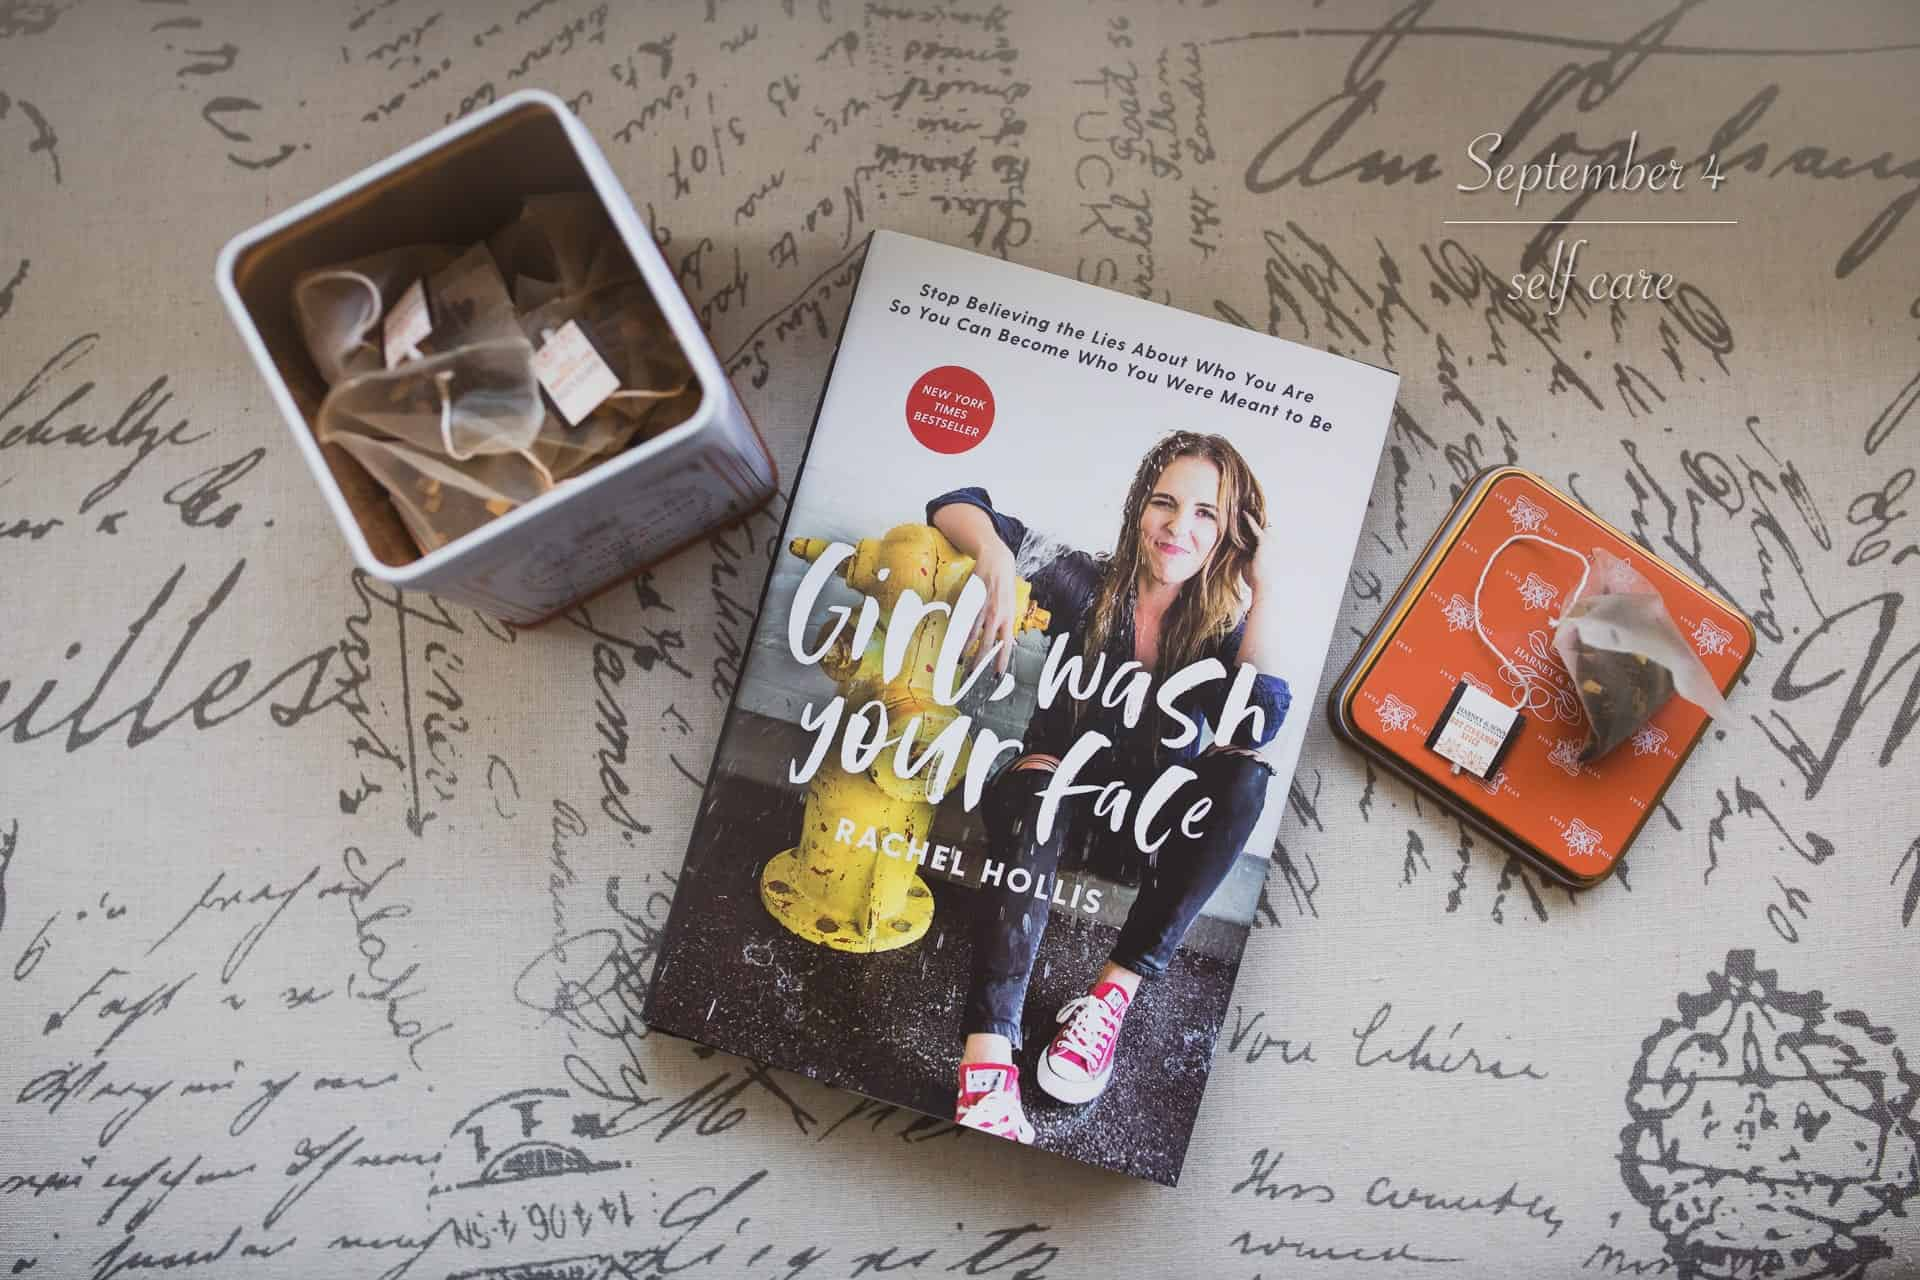 shot of book and tea from above